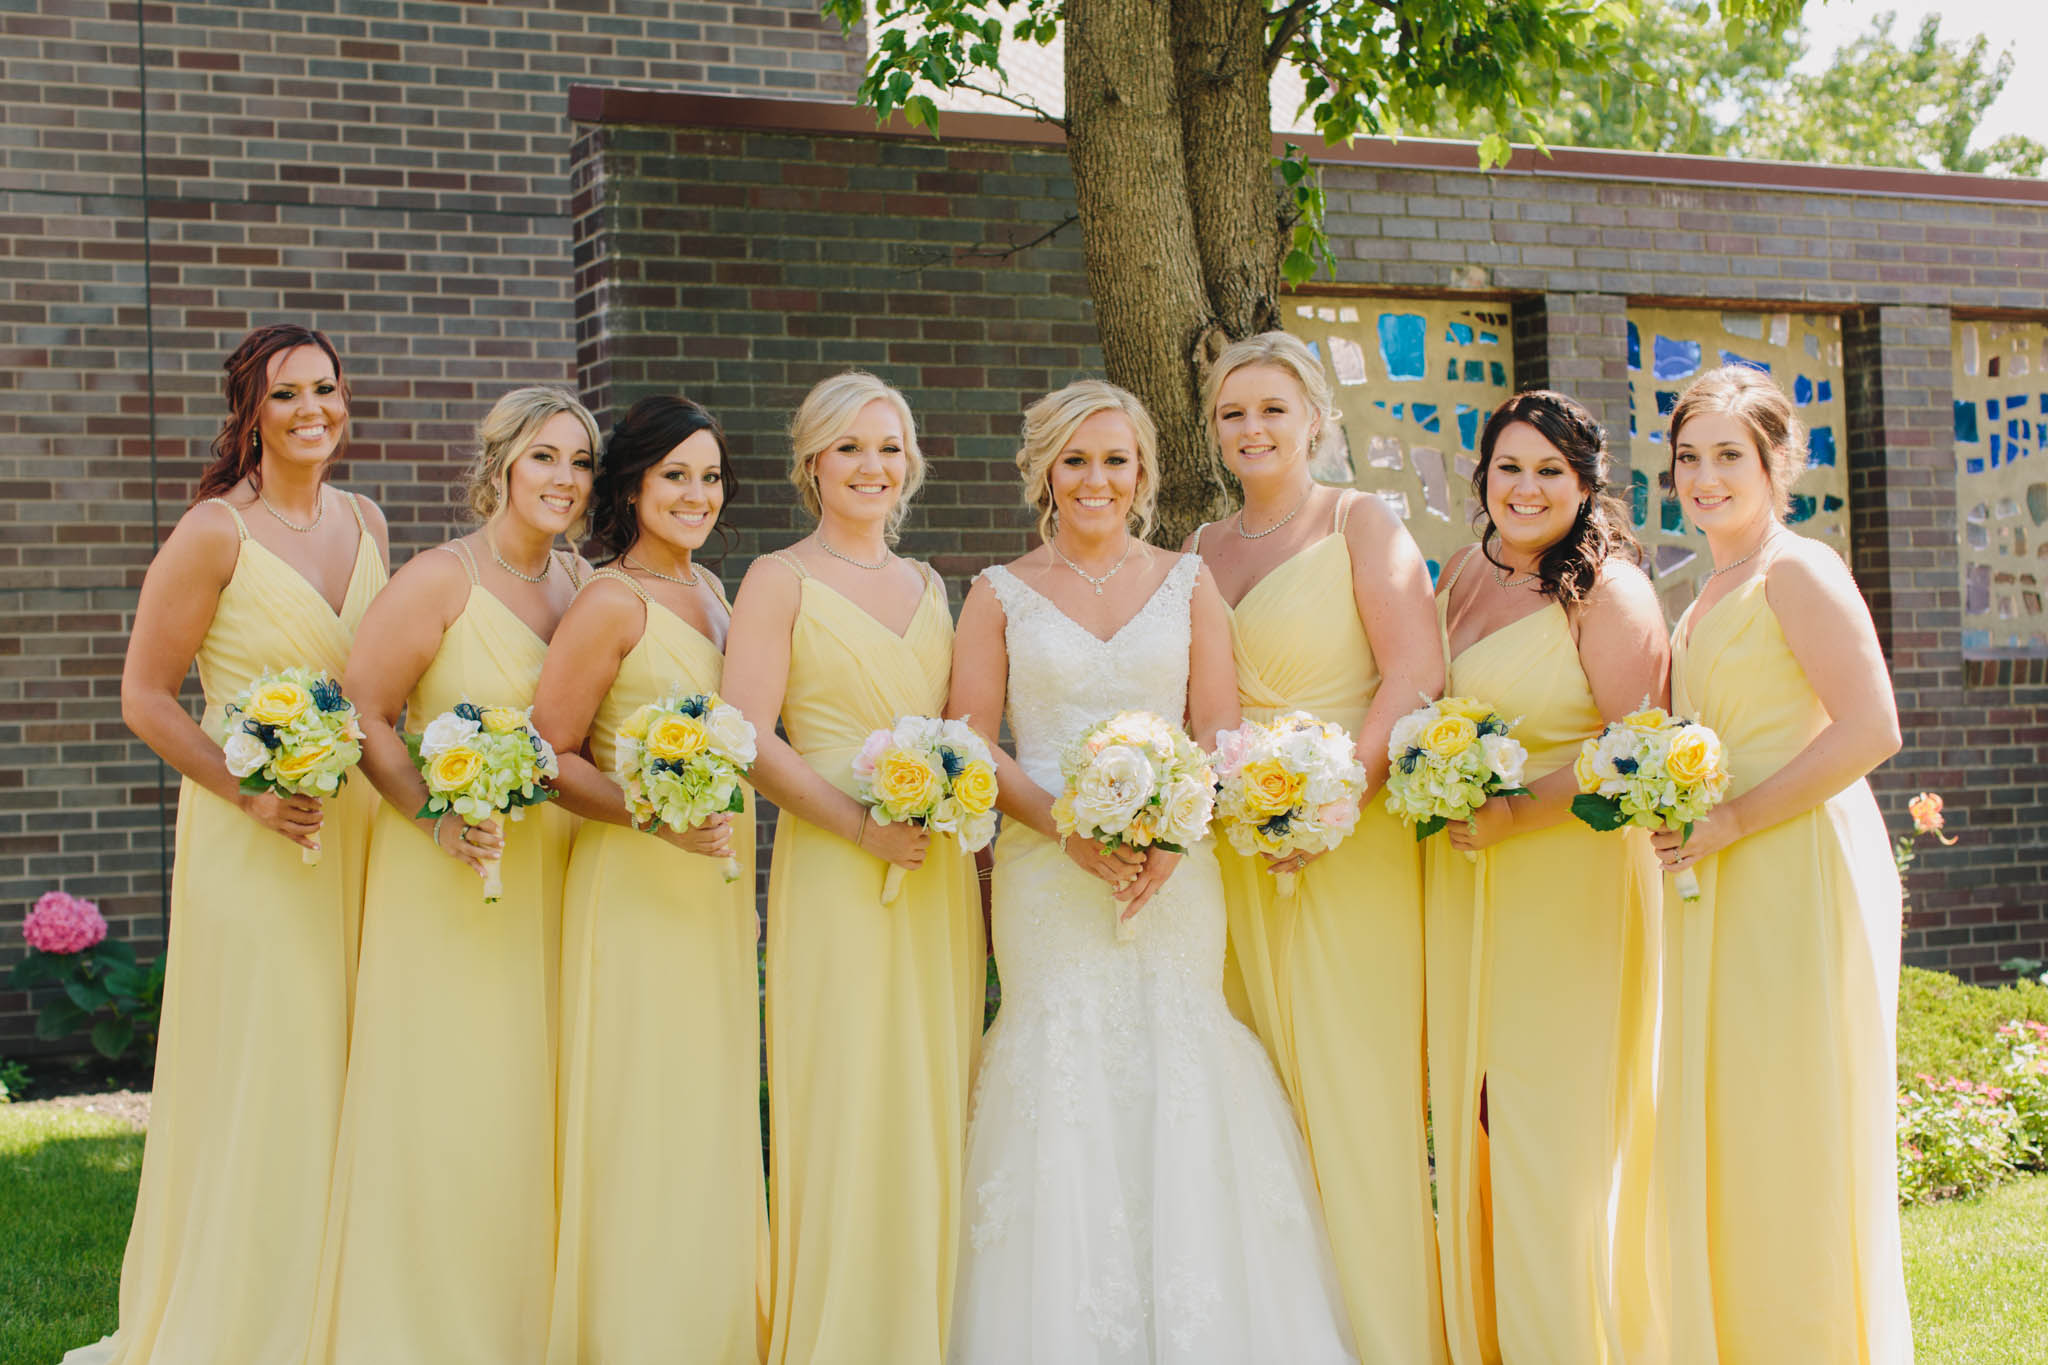 Jillian VanZytveld Photography - Grand Rapids Lifestyle Wedding Photography - 045.jpg